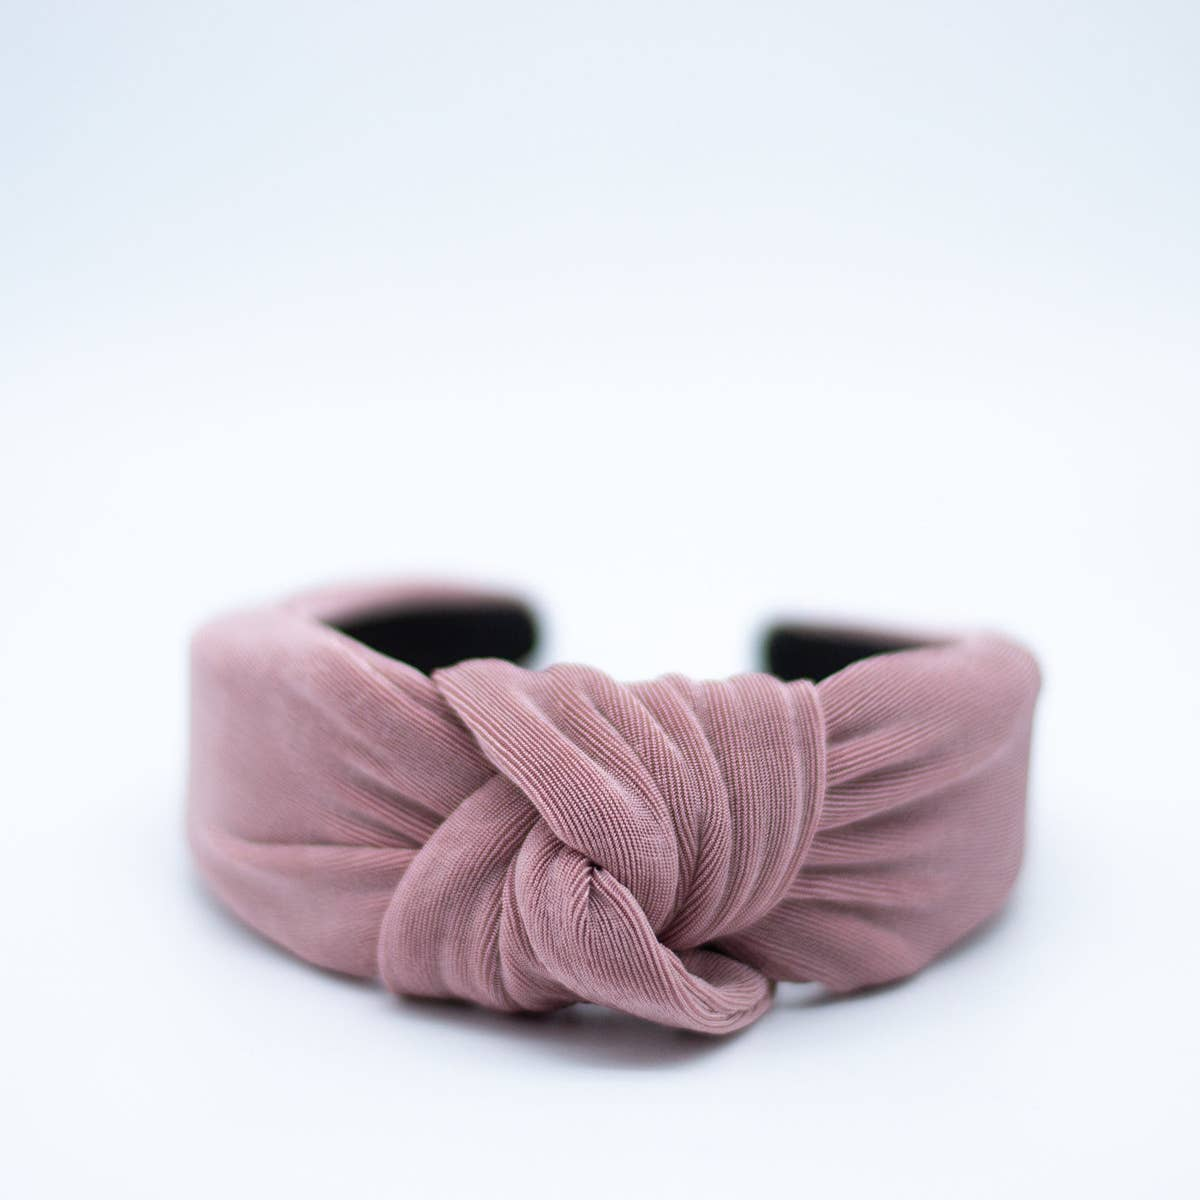 knotted headband in mauve